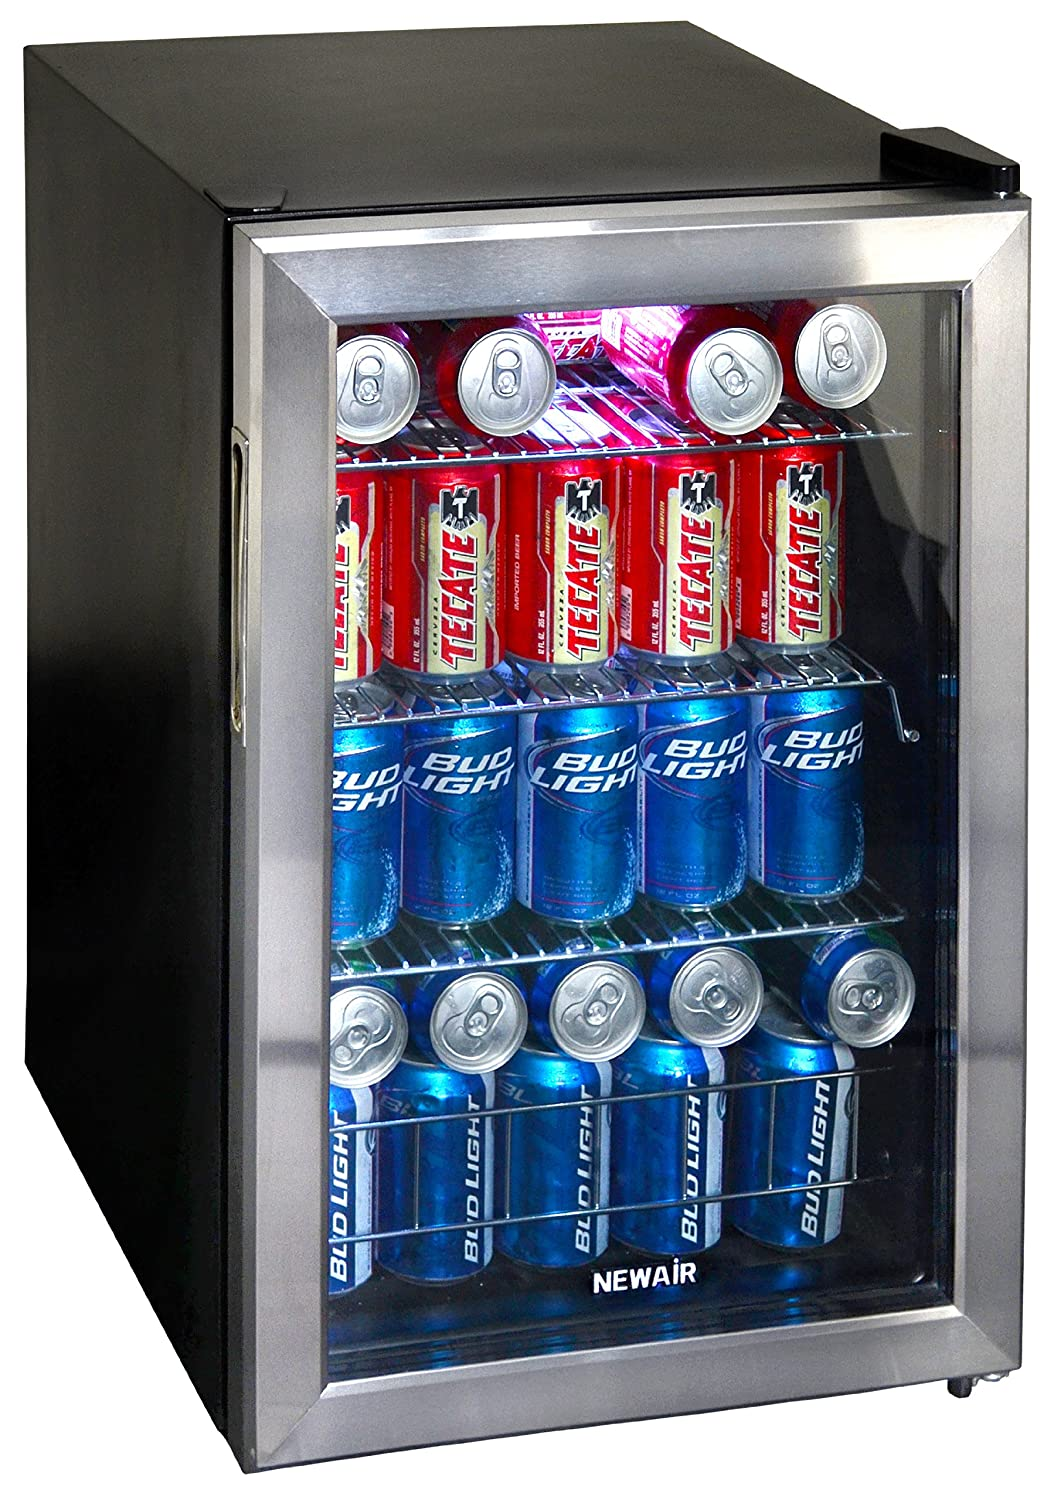 Amazon Newair Beverage Cooler And Refrigerator Small Mini